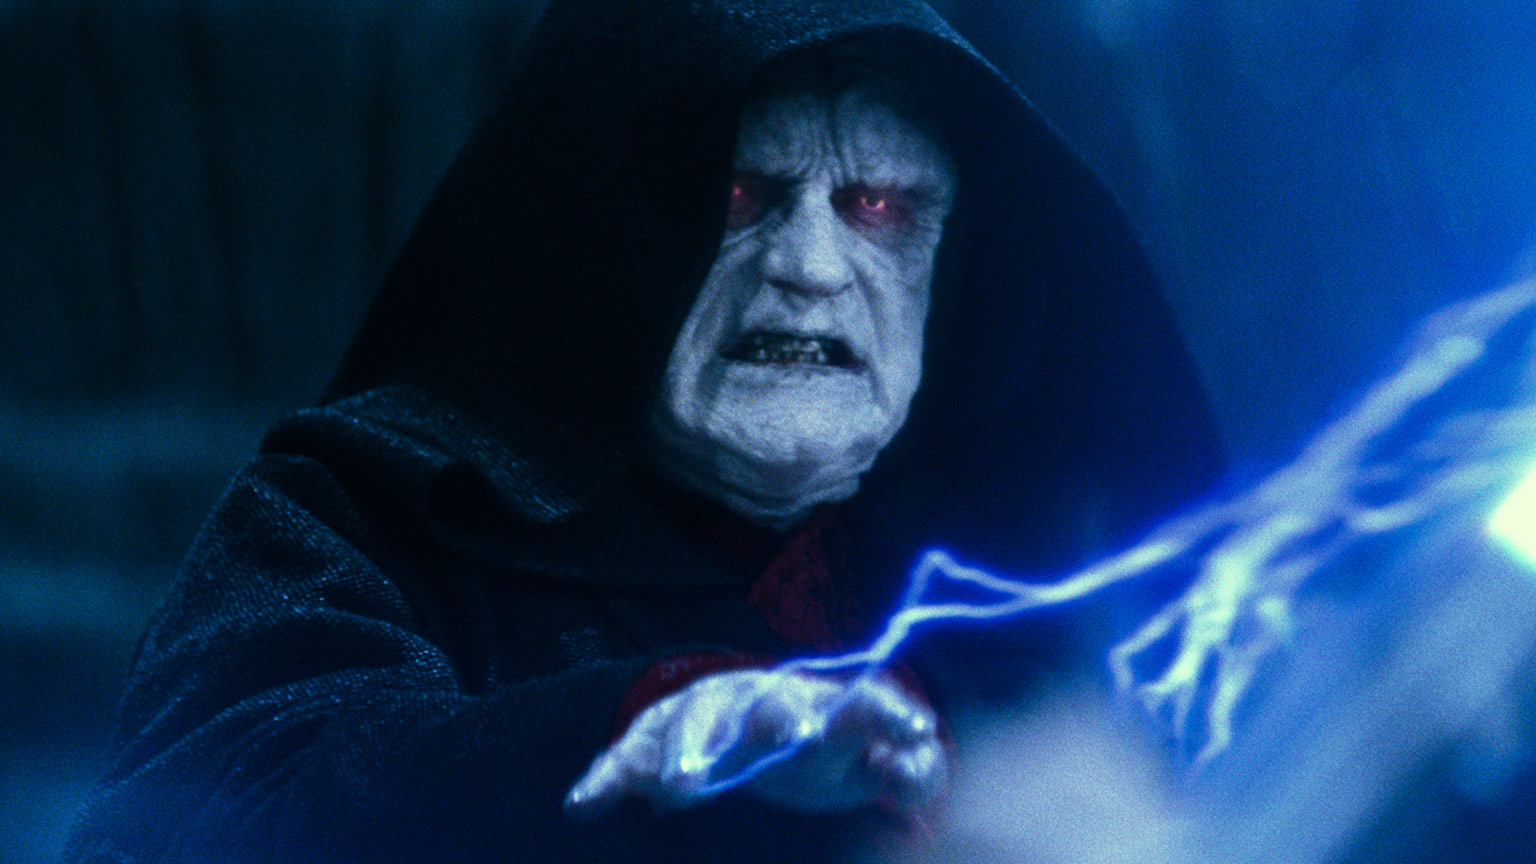 Darth Sidious in The Rise of Skywalker